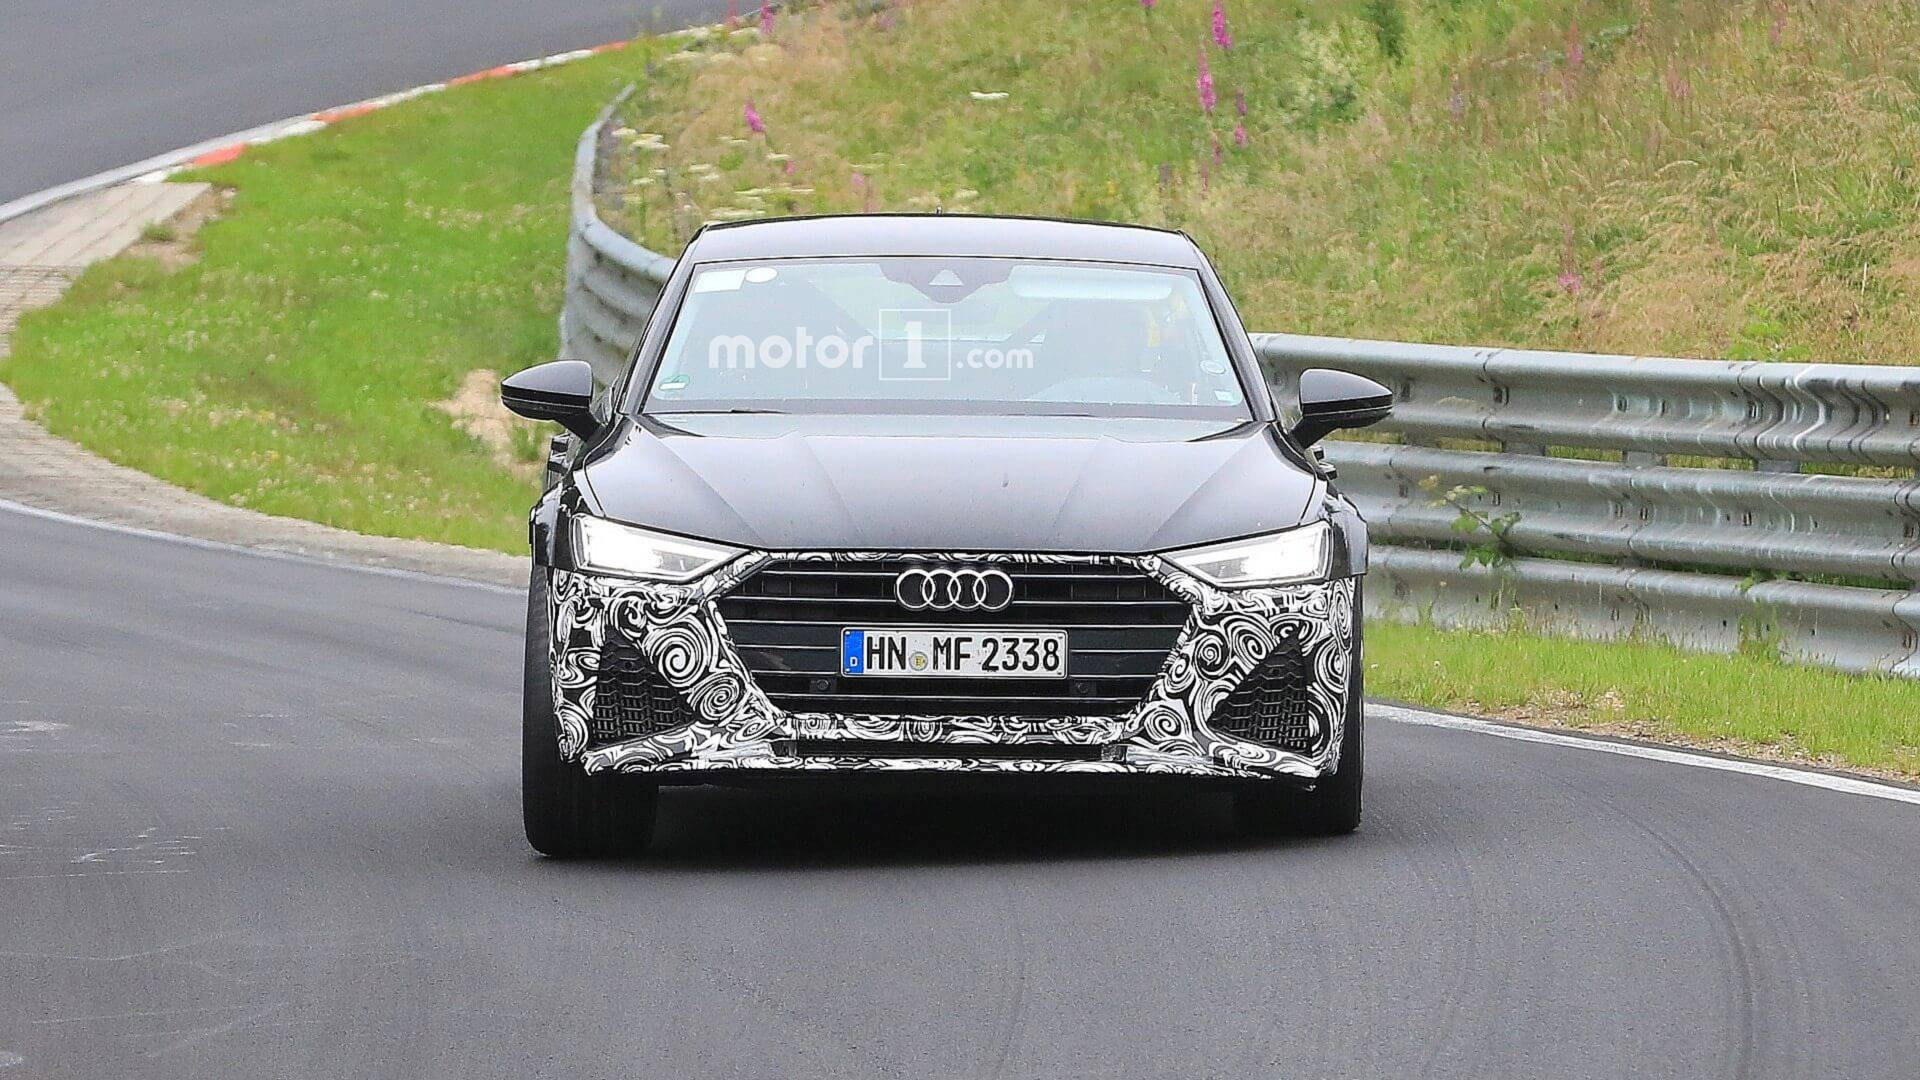 New Audi Rs7 Spied Going Fast Through The Nurburgring Corners